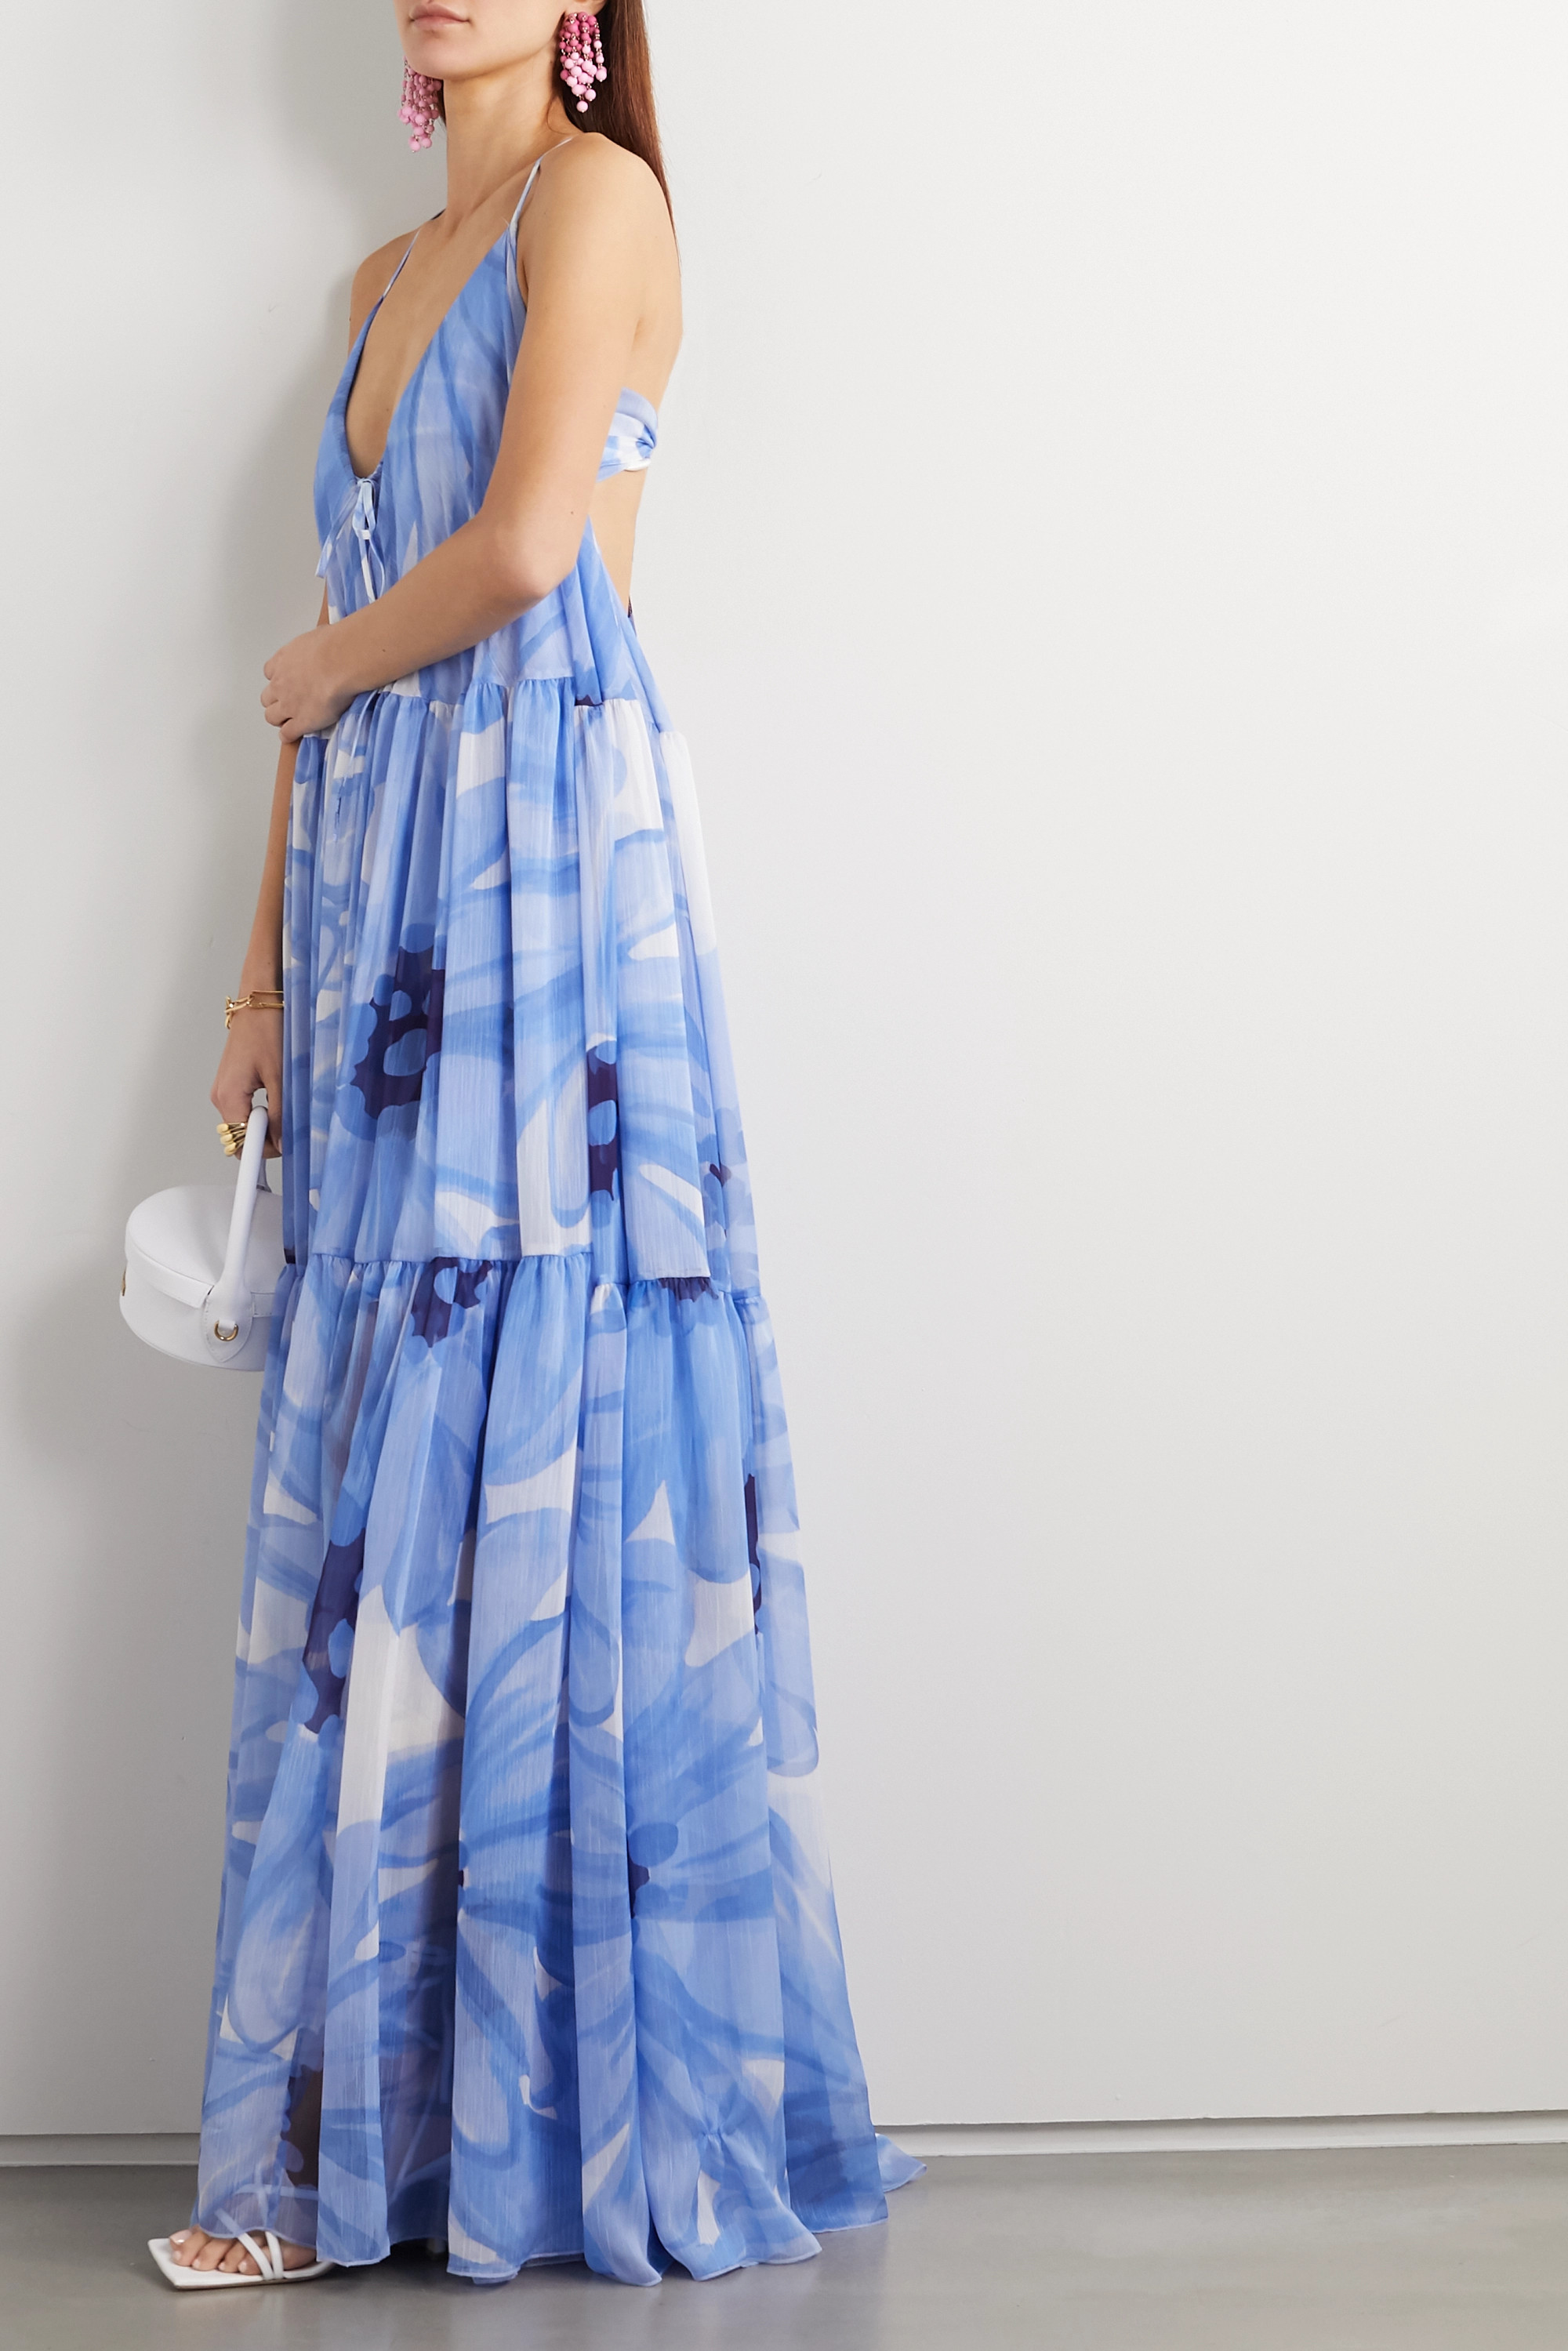 Jacquemus Mistral tiered floral-print georgette maxi dress